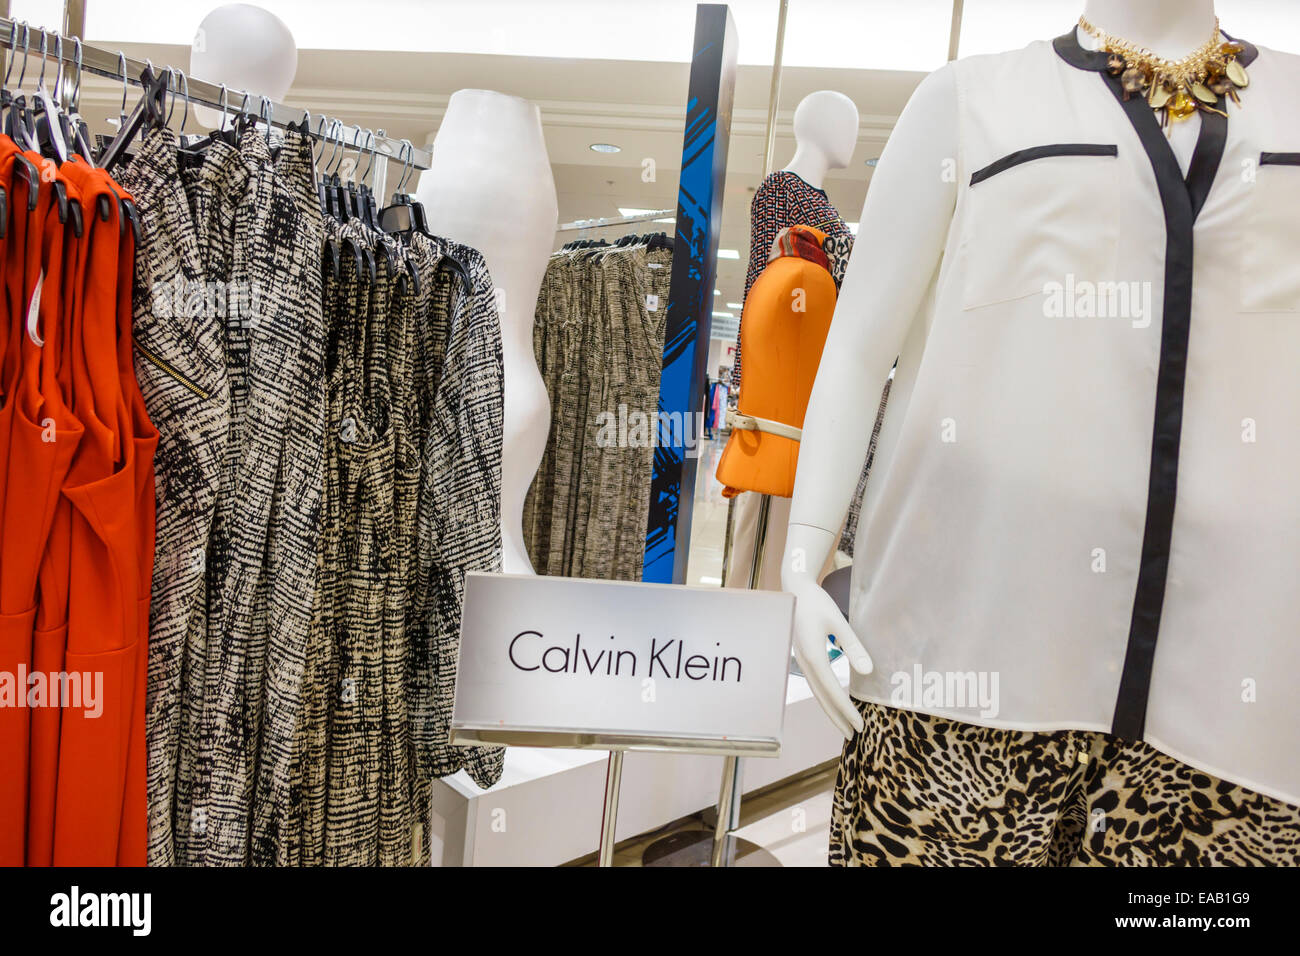 5537e6983c2ea Miami Florida Macy s department store shopping inside sale display fashion Calvin  Klein women s clothing - Stock